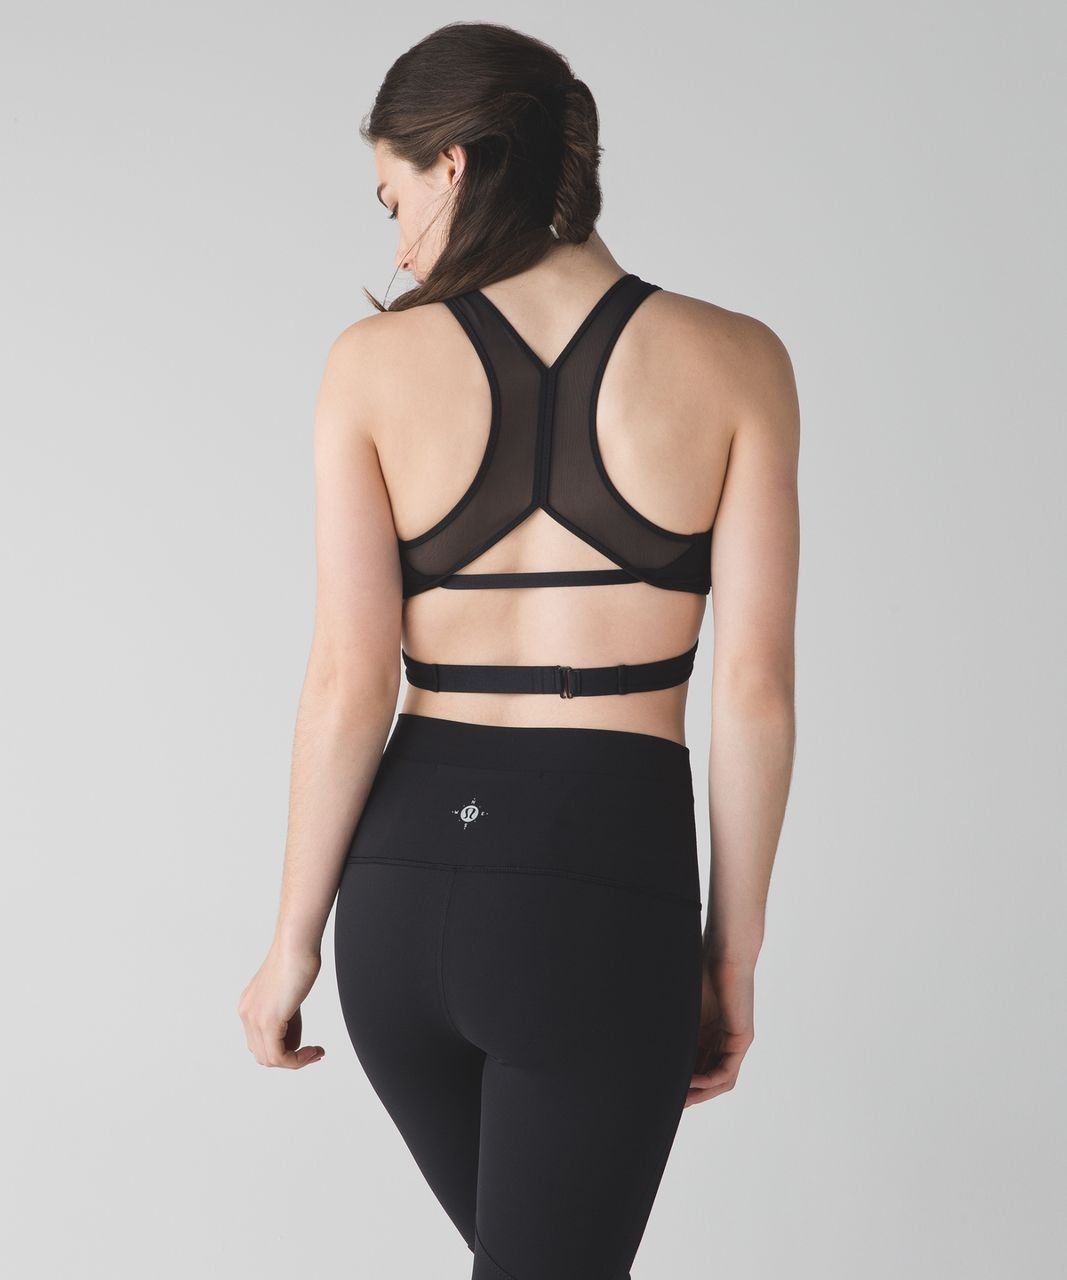 Lululemon Yoga Haven Bra - Black